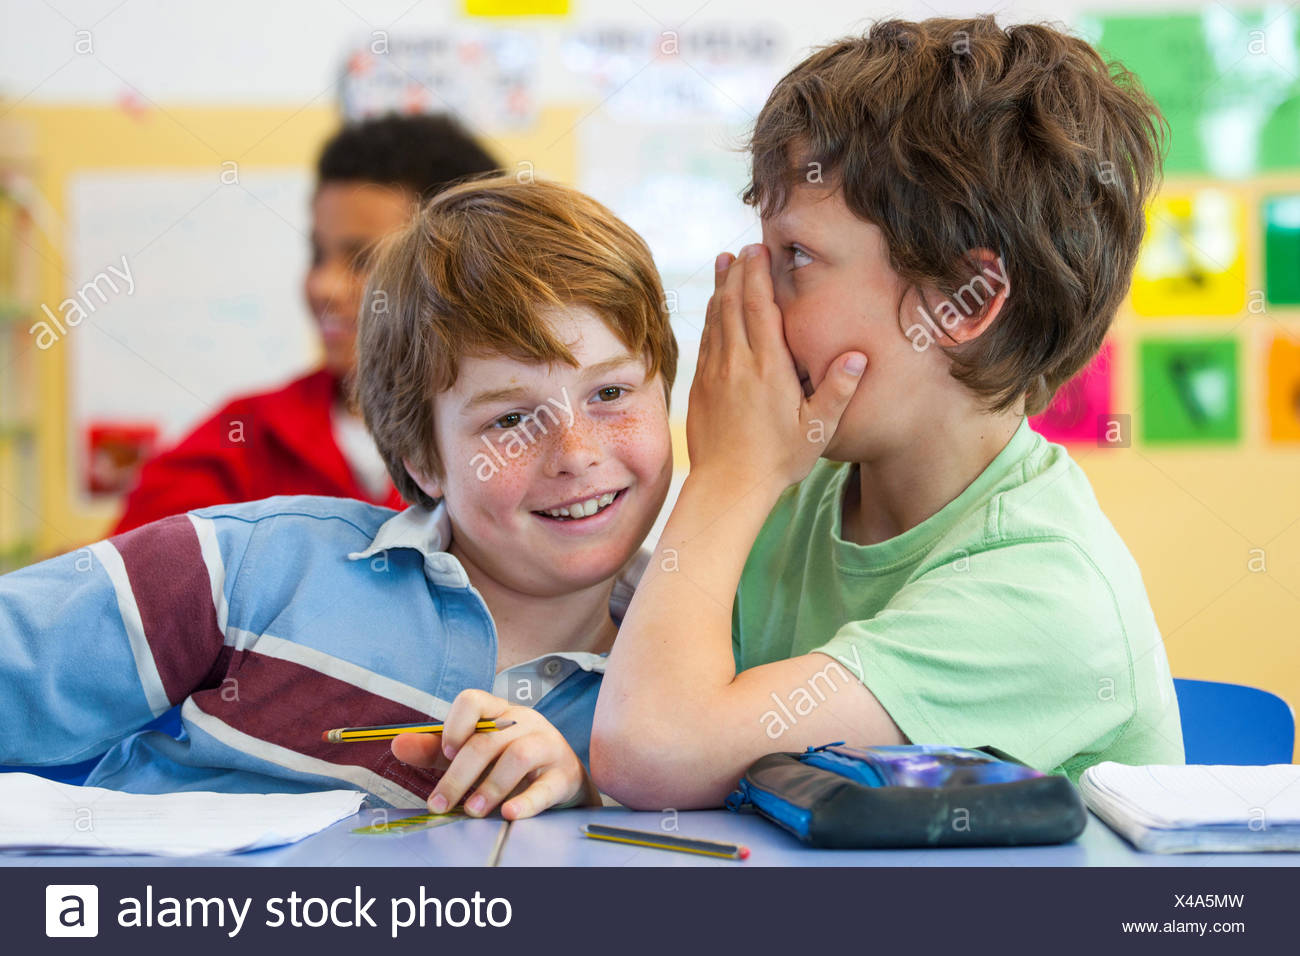 Primary schoolboys whispering in classroom - Stock Image